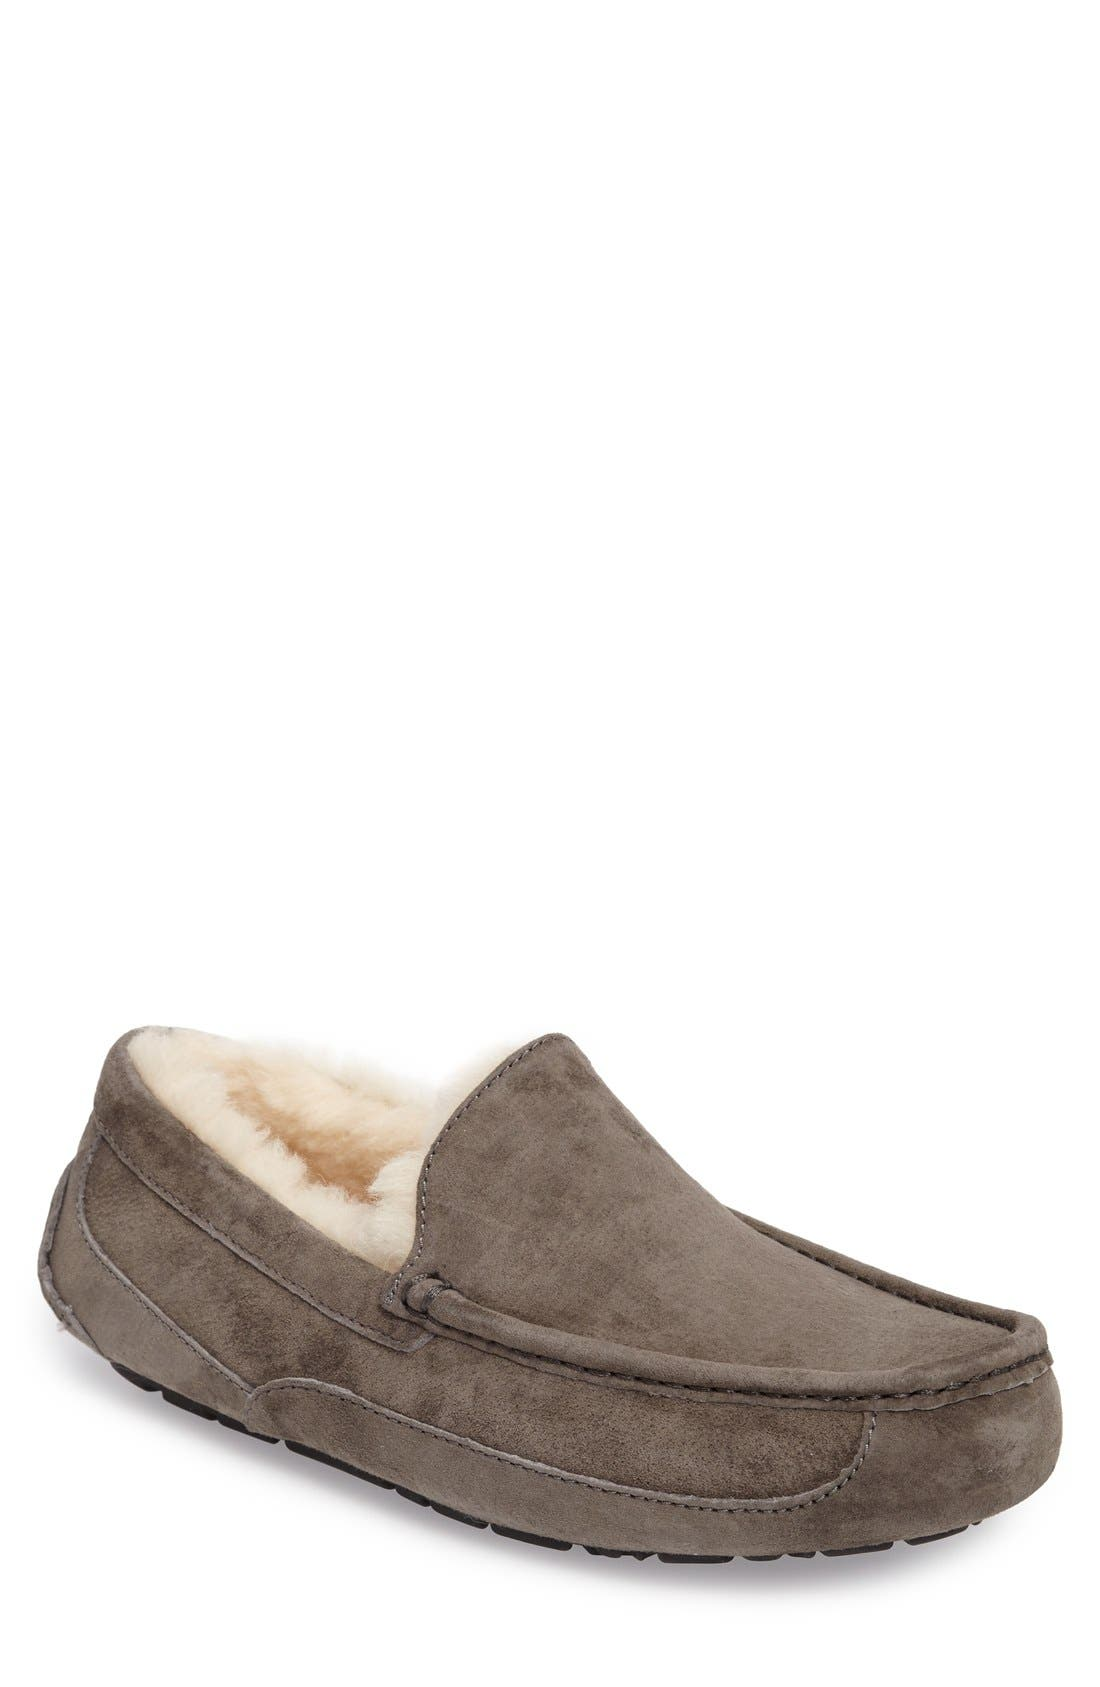 Main Image - UGG® Ascot Suede Slipper (Men)